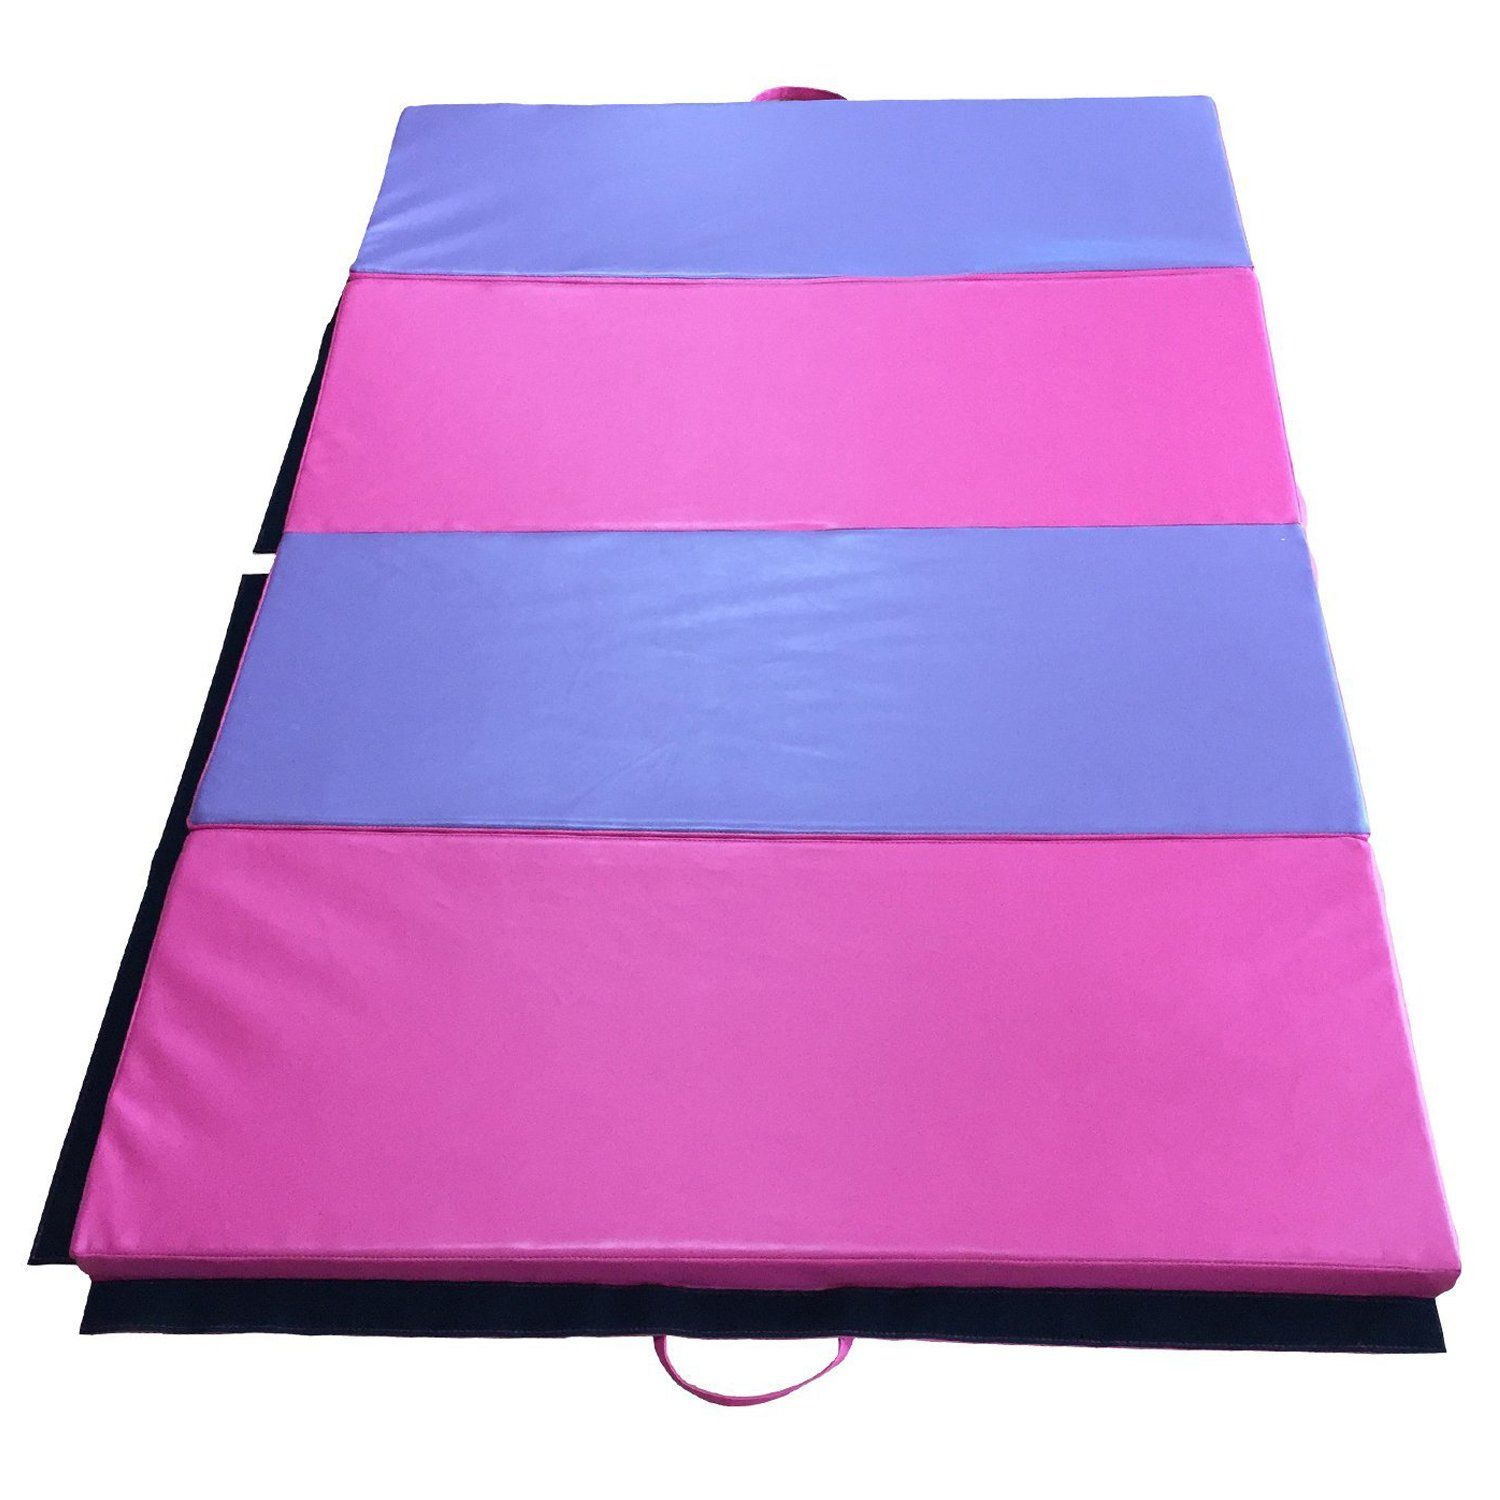 gymnastics mat tumbler foam com outdoors purple amazon sports wedge diy mats triangle dp incline gym tumbling